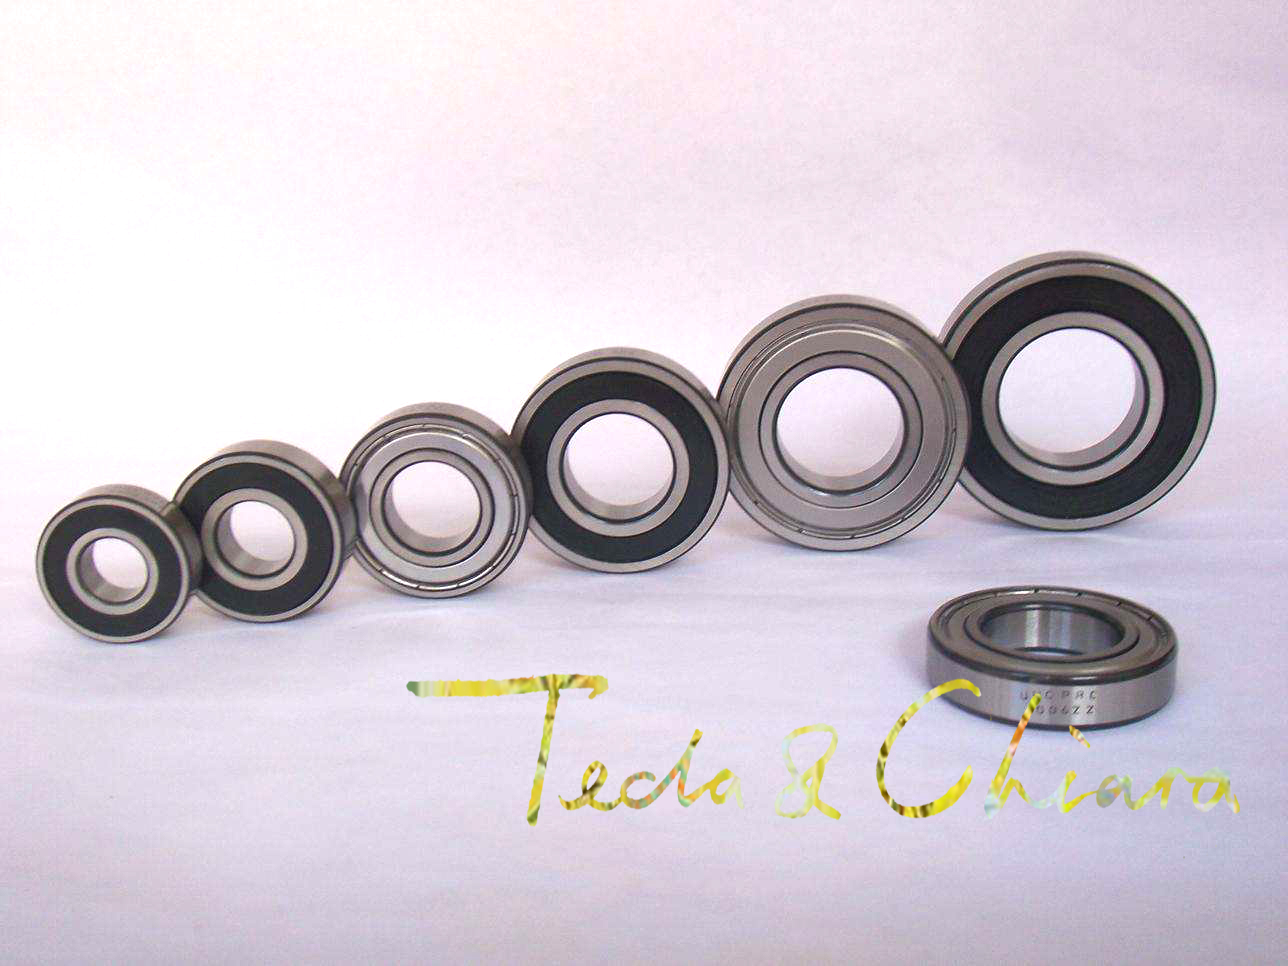 626 626ZZ 626RS 626-2Z 626Z 626-2RS ZZ RS RZ 2RZ Deep Groove Ball Bearings 6 x 19 x 6mm High Quality free shipping 25x47x12mm deep groove ball bearings 6005 zz 2z 6005zz bearing 6005zz 6005 2rs